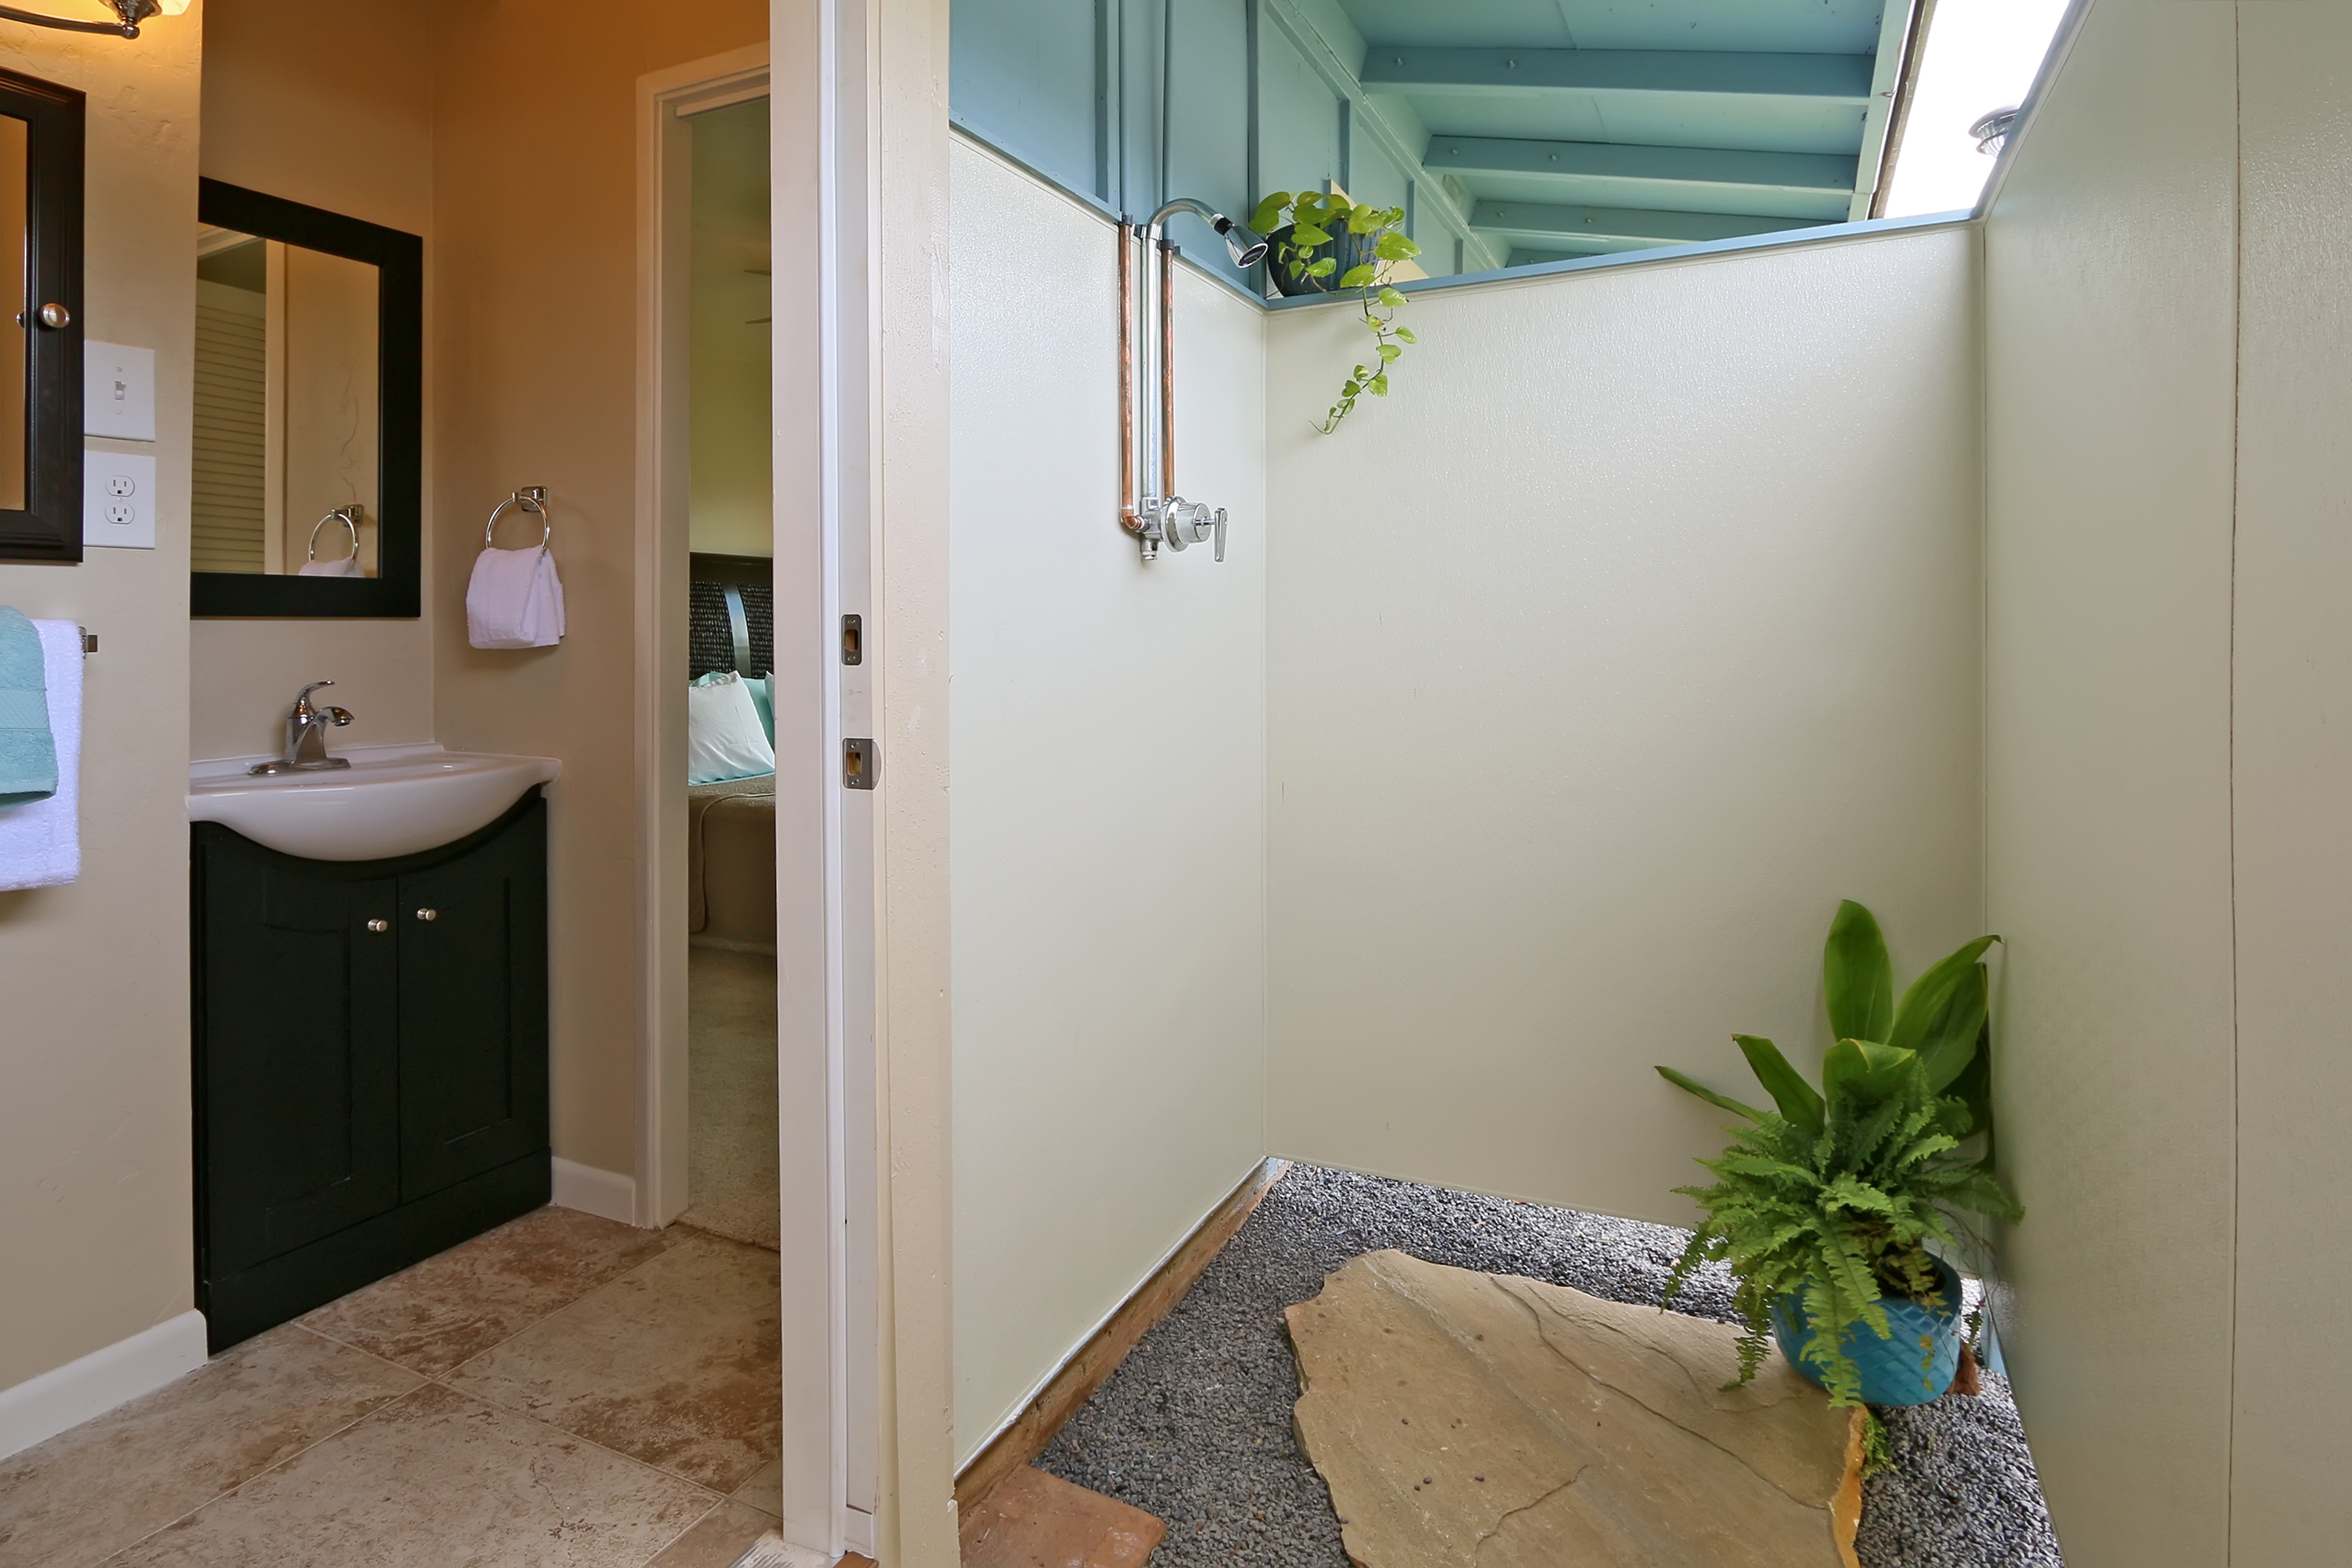 Maui kihei homes for sale under 500 000 great buy for Outdoor bathrooms for sale